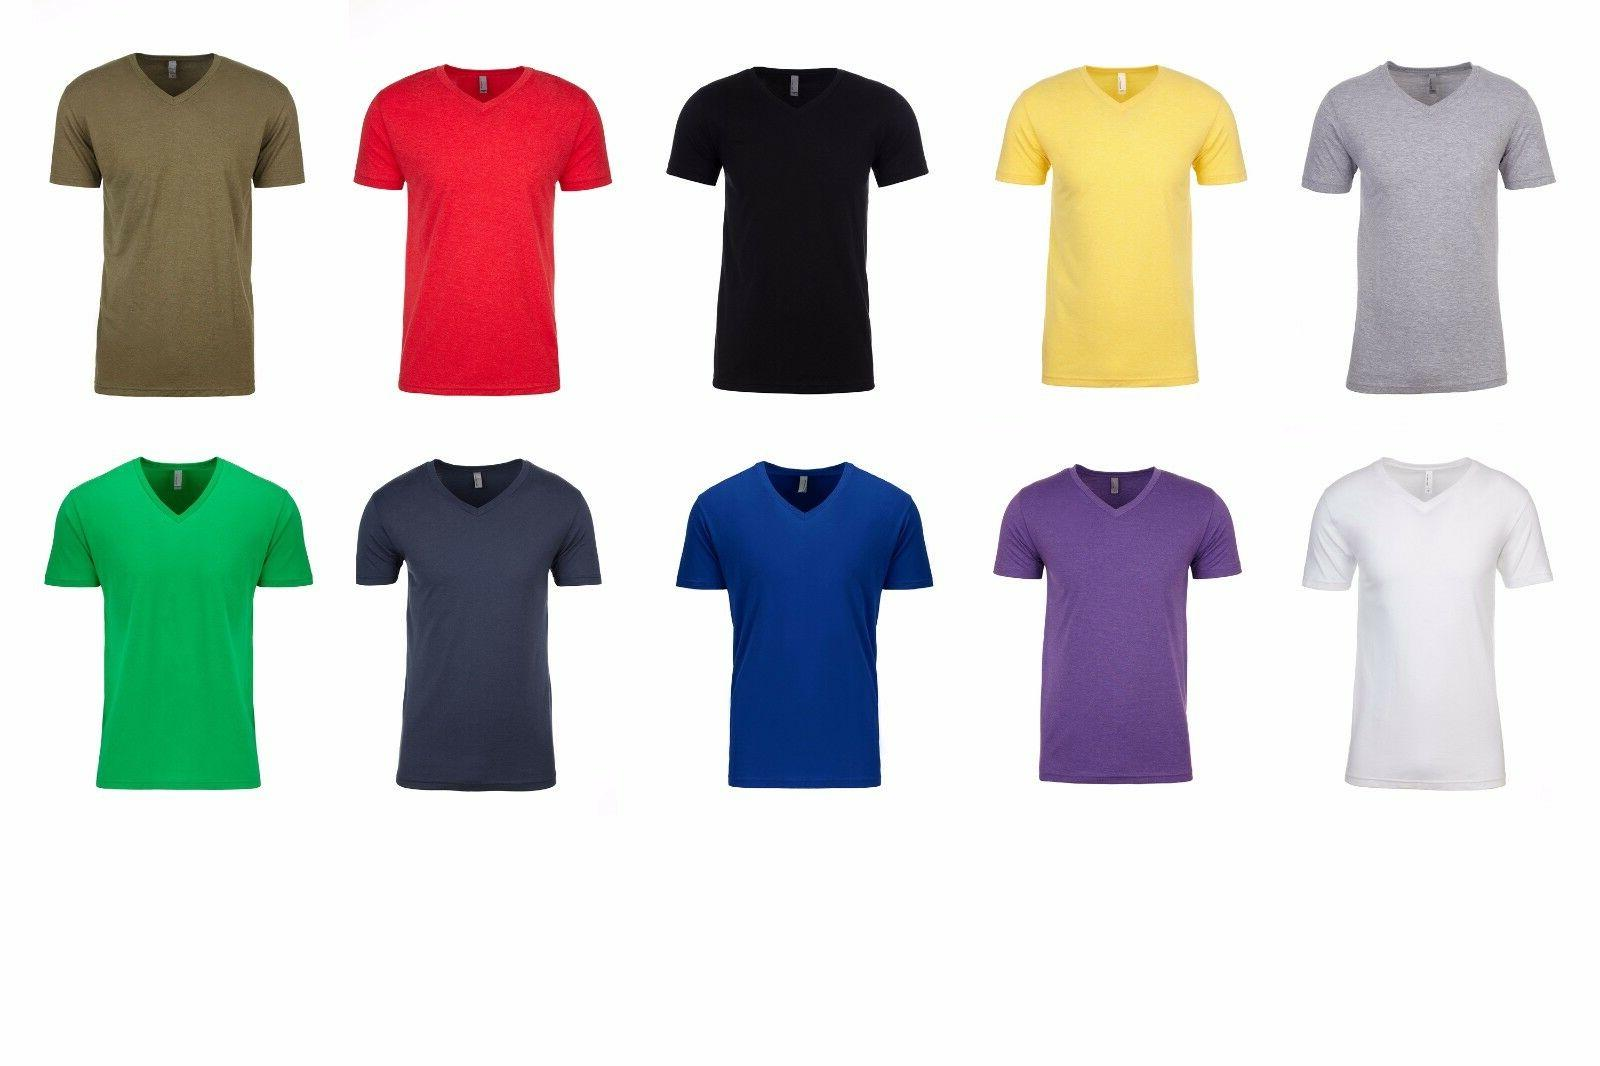 NEXT LEVEL PLAIN ADULT/UNISEX V-NECK T SHIRTS BEST SHIRT BES